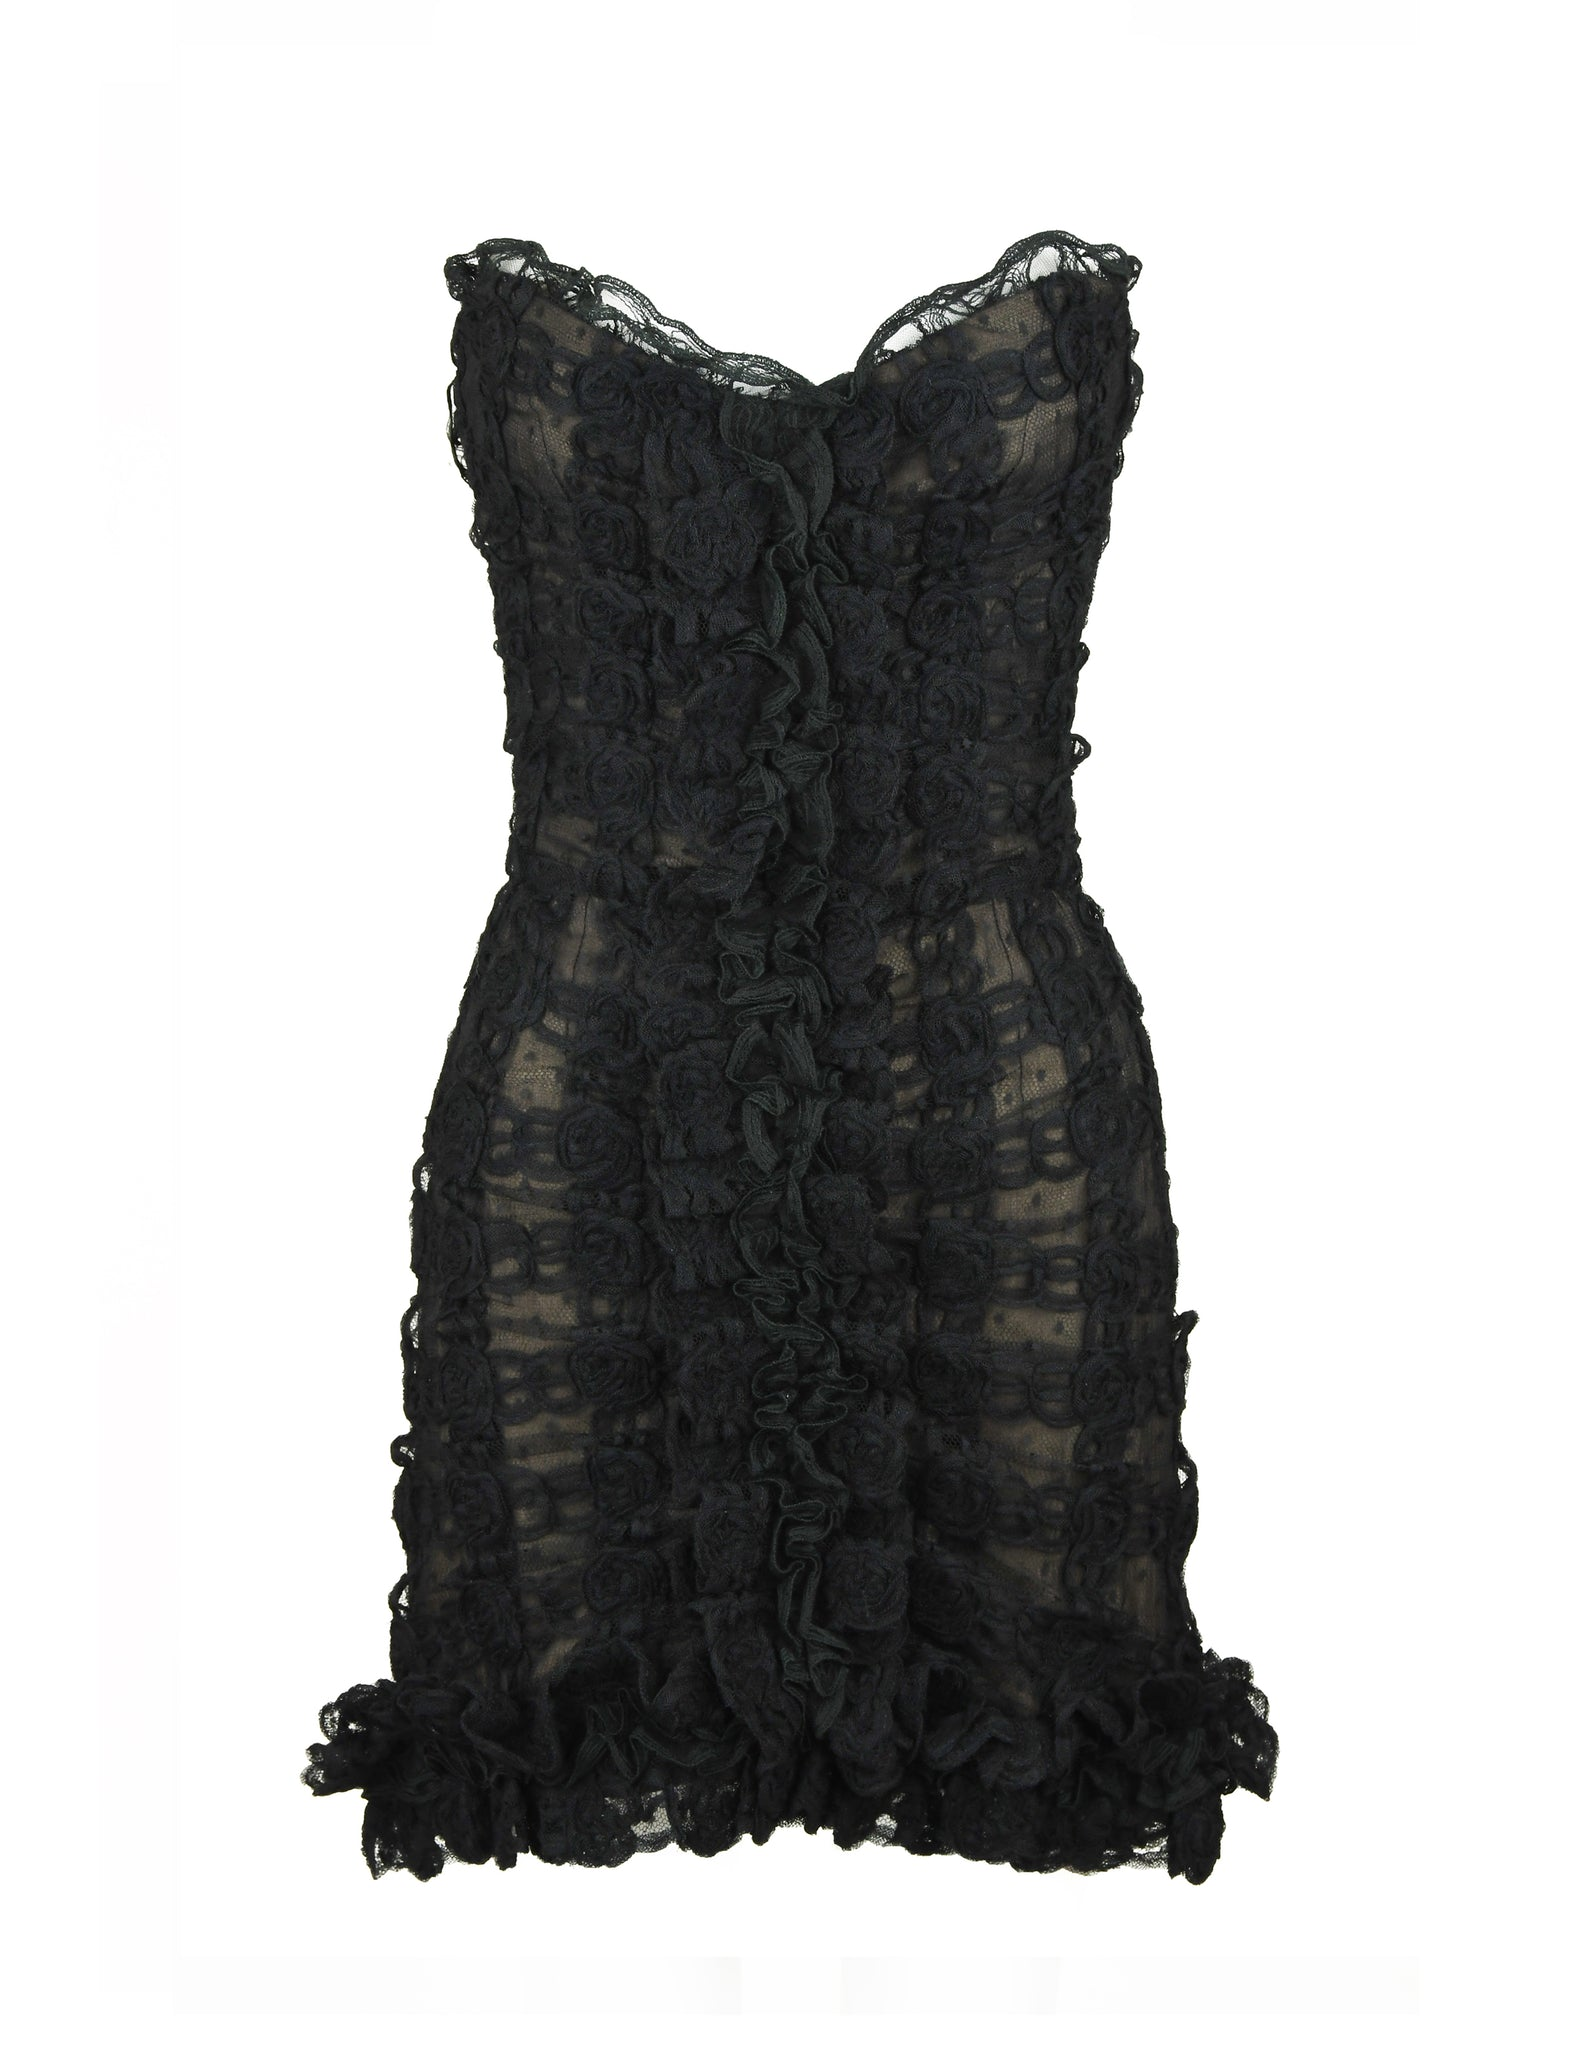 Vintage Chanel Black Strapless Lace Dress